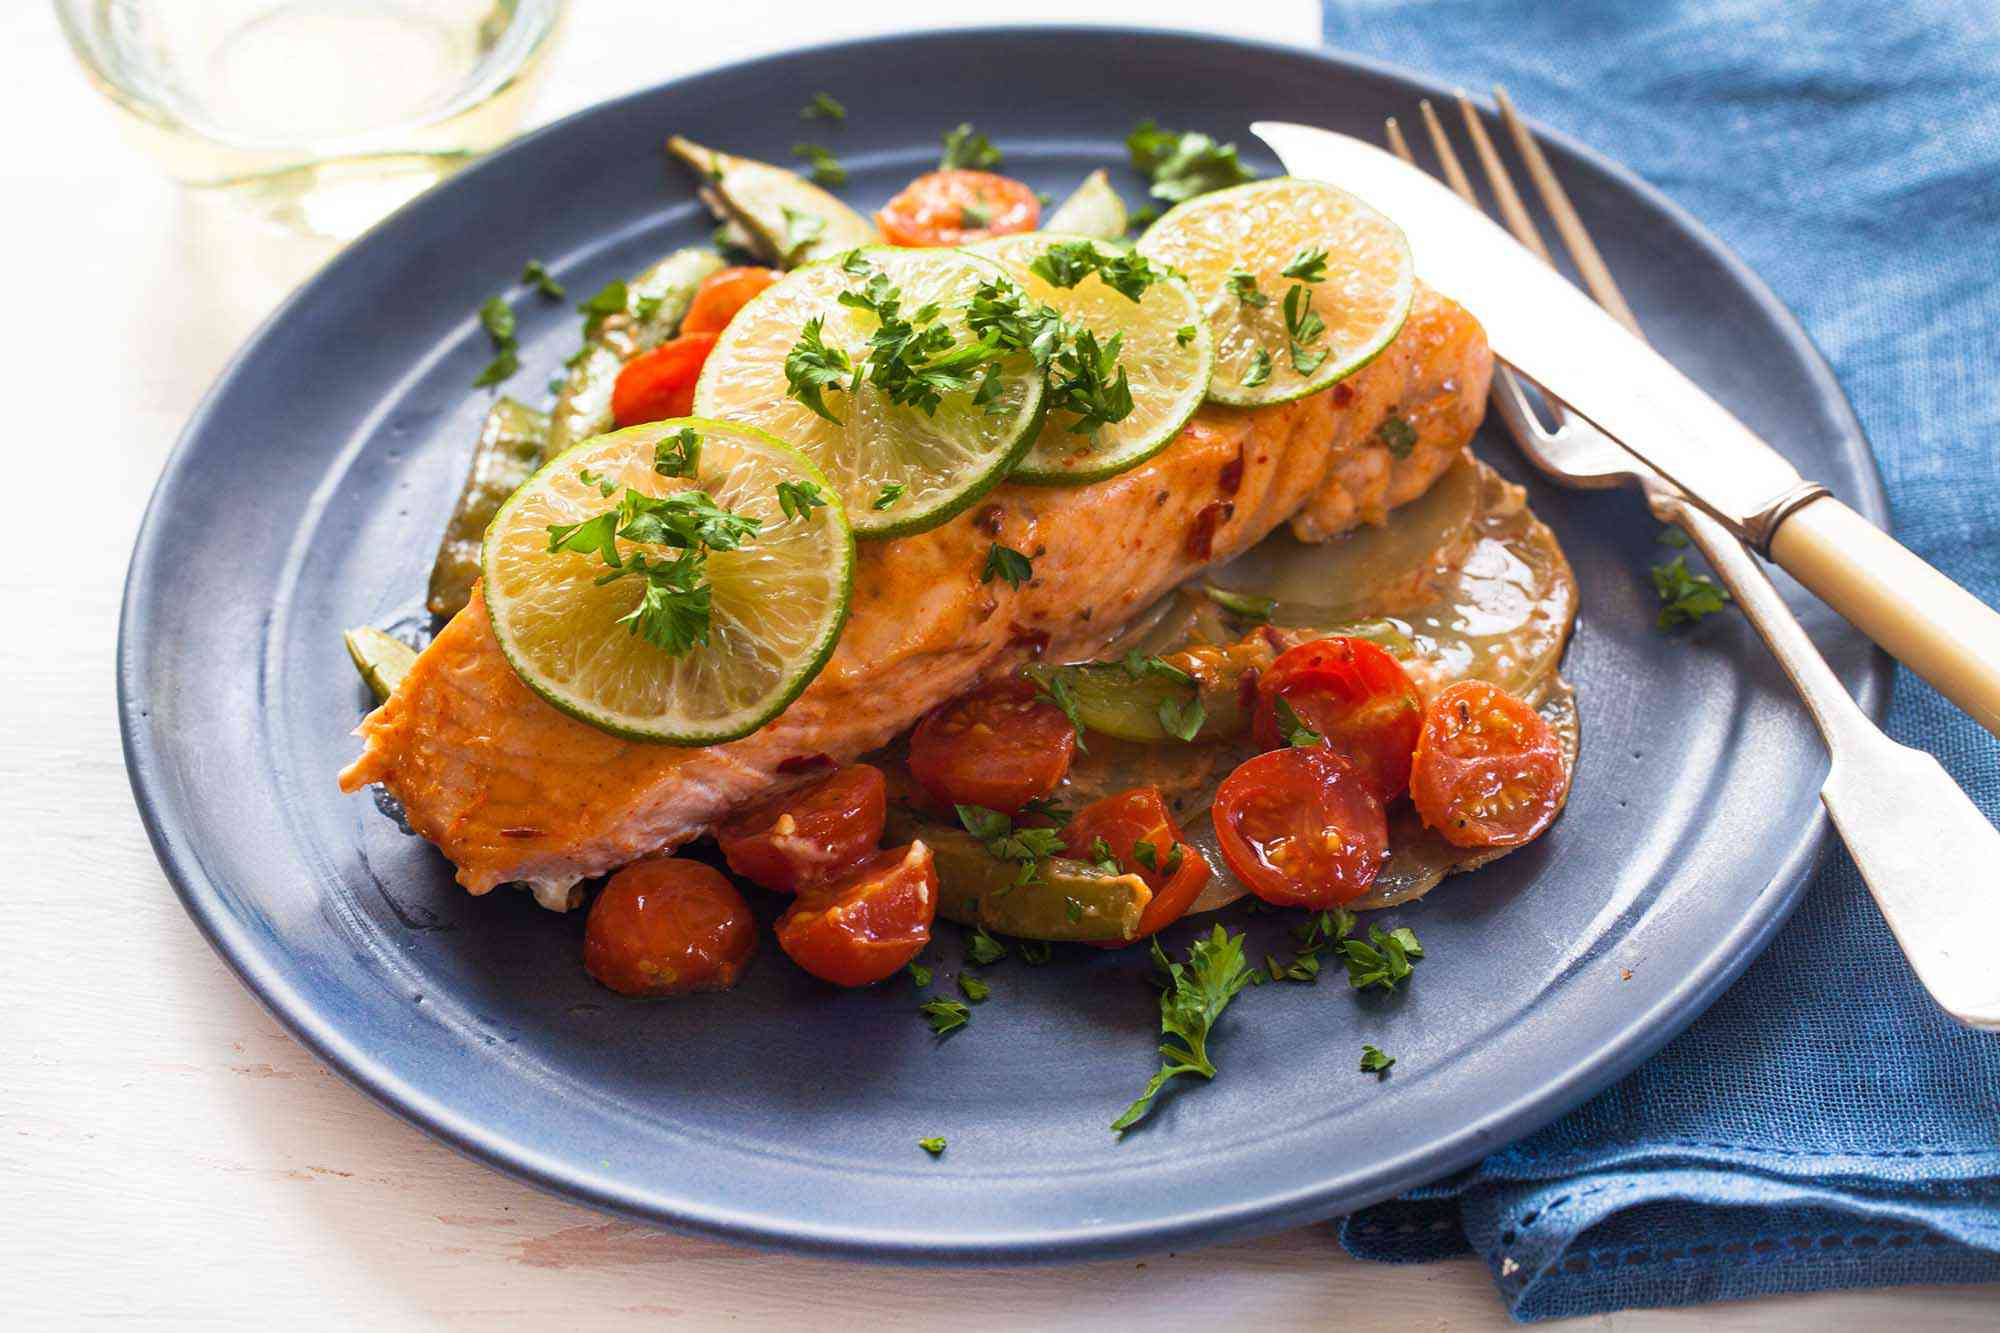 Side view of the best roasted salmon fillet. Halved grape tomatoes, chopped cilantro and thinly sliced lemon sit on top. A knife and fork are on the right side of the plate and a blue napkin is folded next to the utensils.